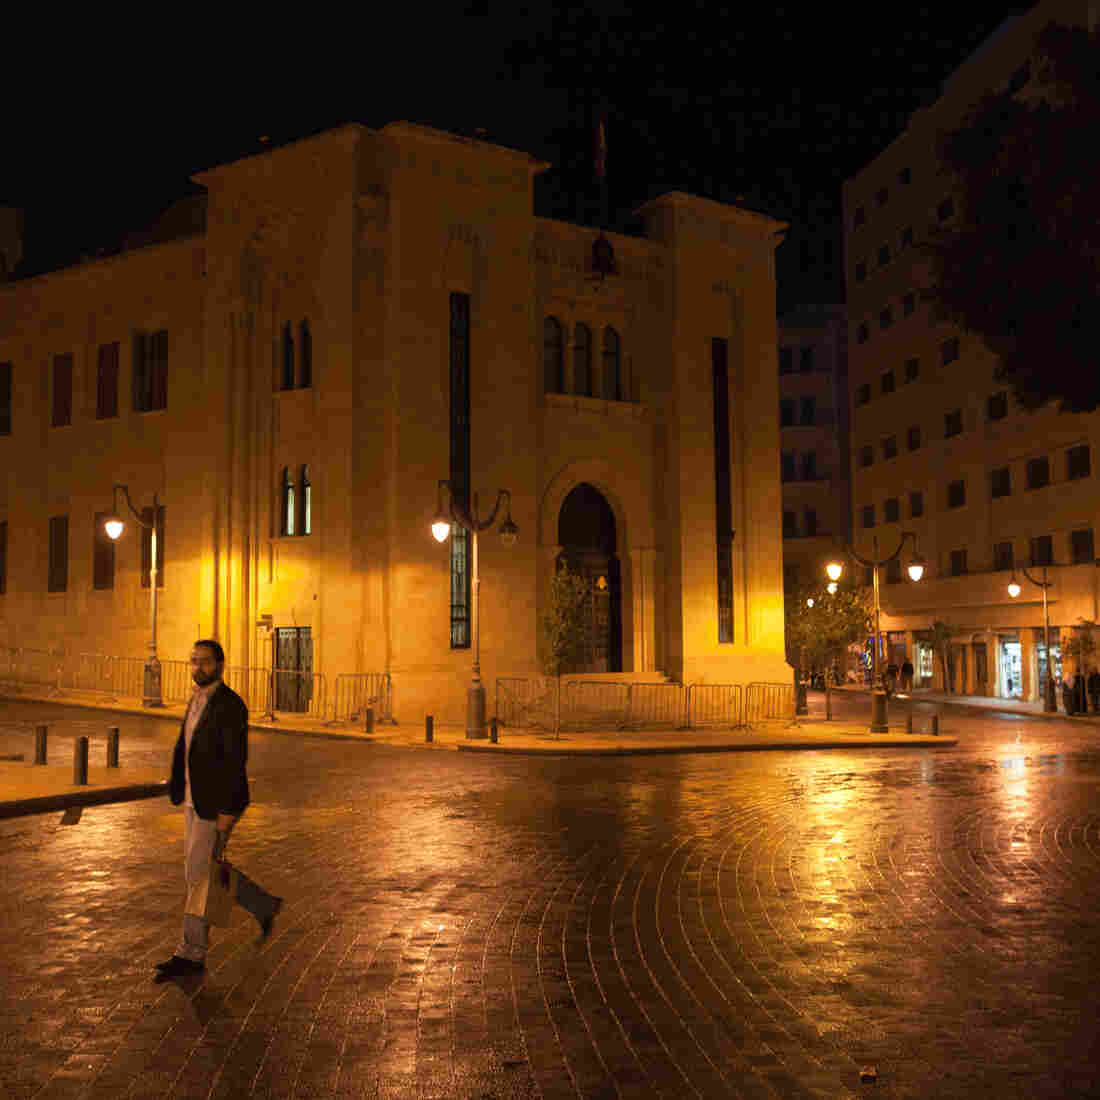 Ghosts Of The Past Still Echo In Beirut's Fragmented Neighborhoods